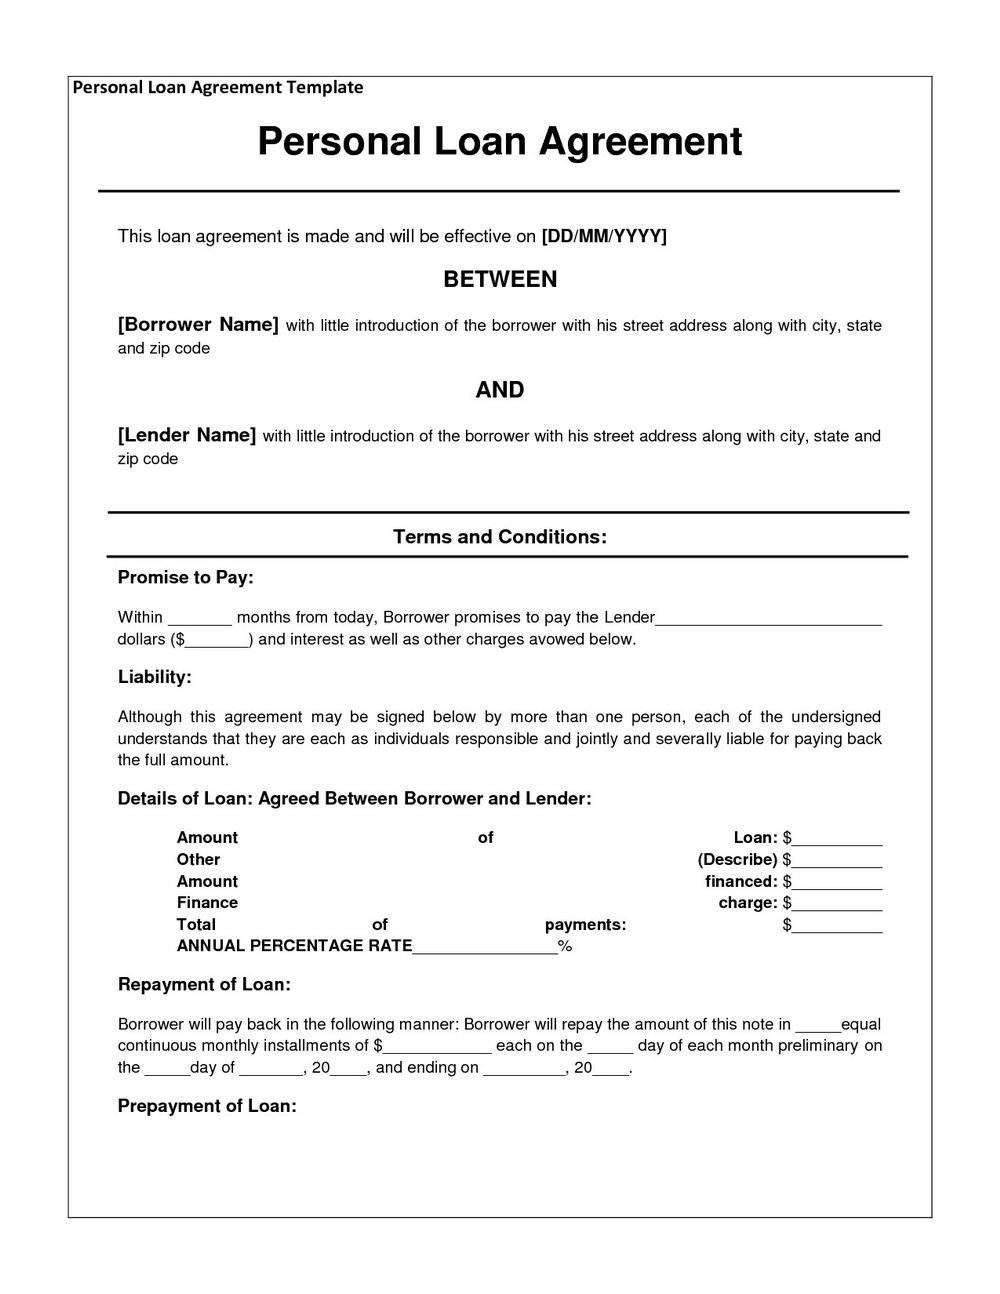 Personal Loan Agreement Template Free